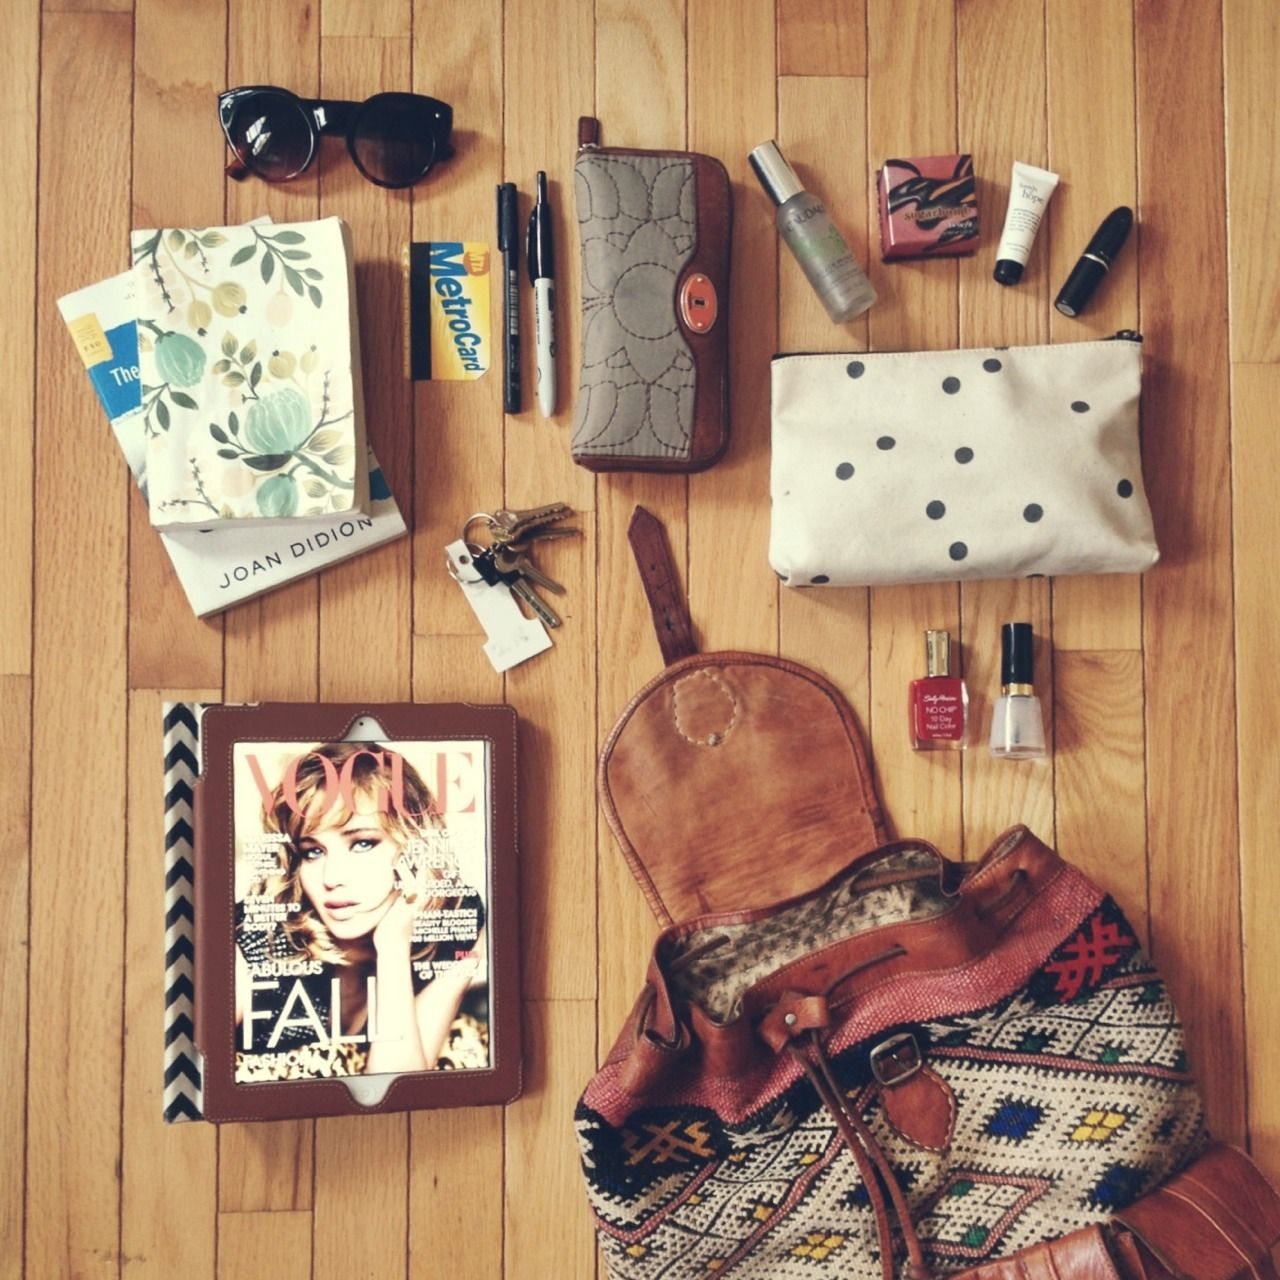 Camillevr Travel Essentials Im Off On A Little Mini Vacation To Get Some Much Needed Relaxation And Beach Time In Before The Summers Over